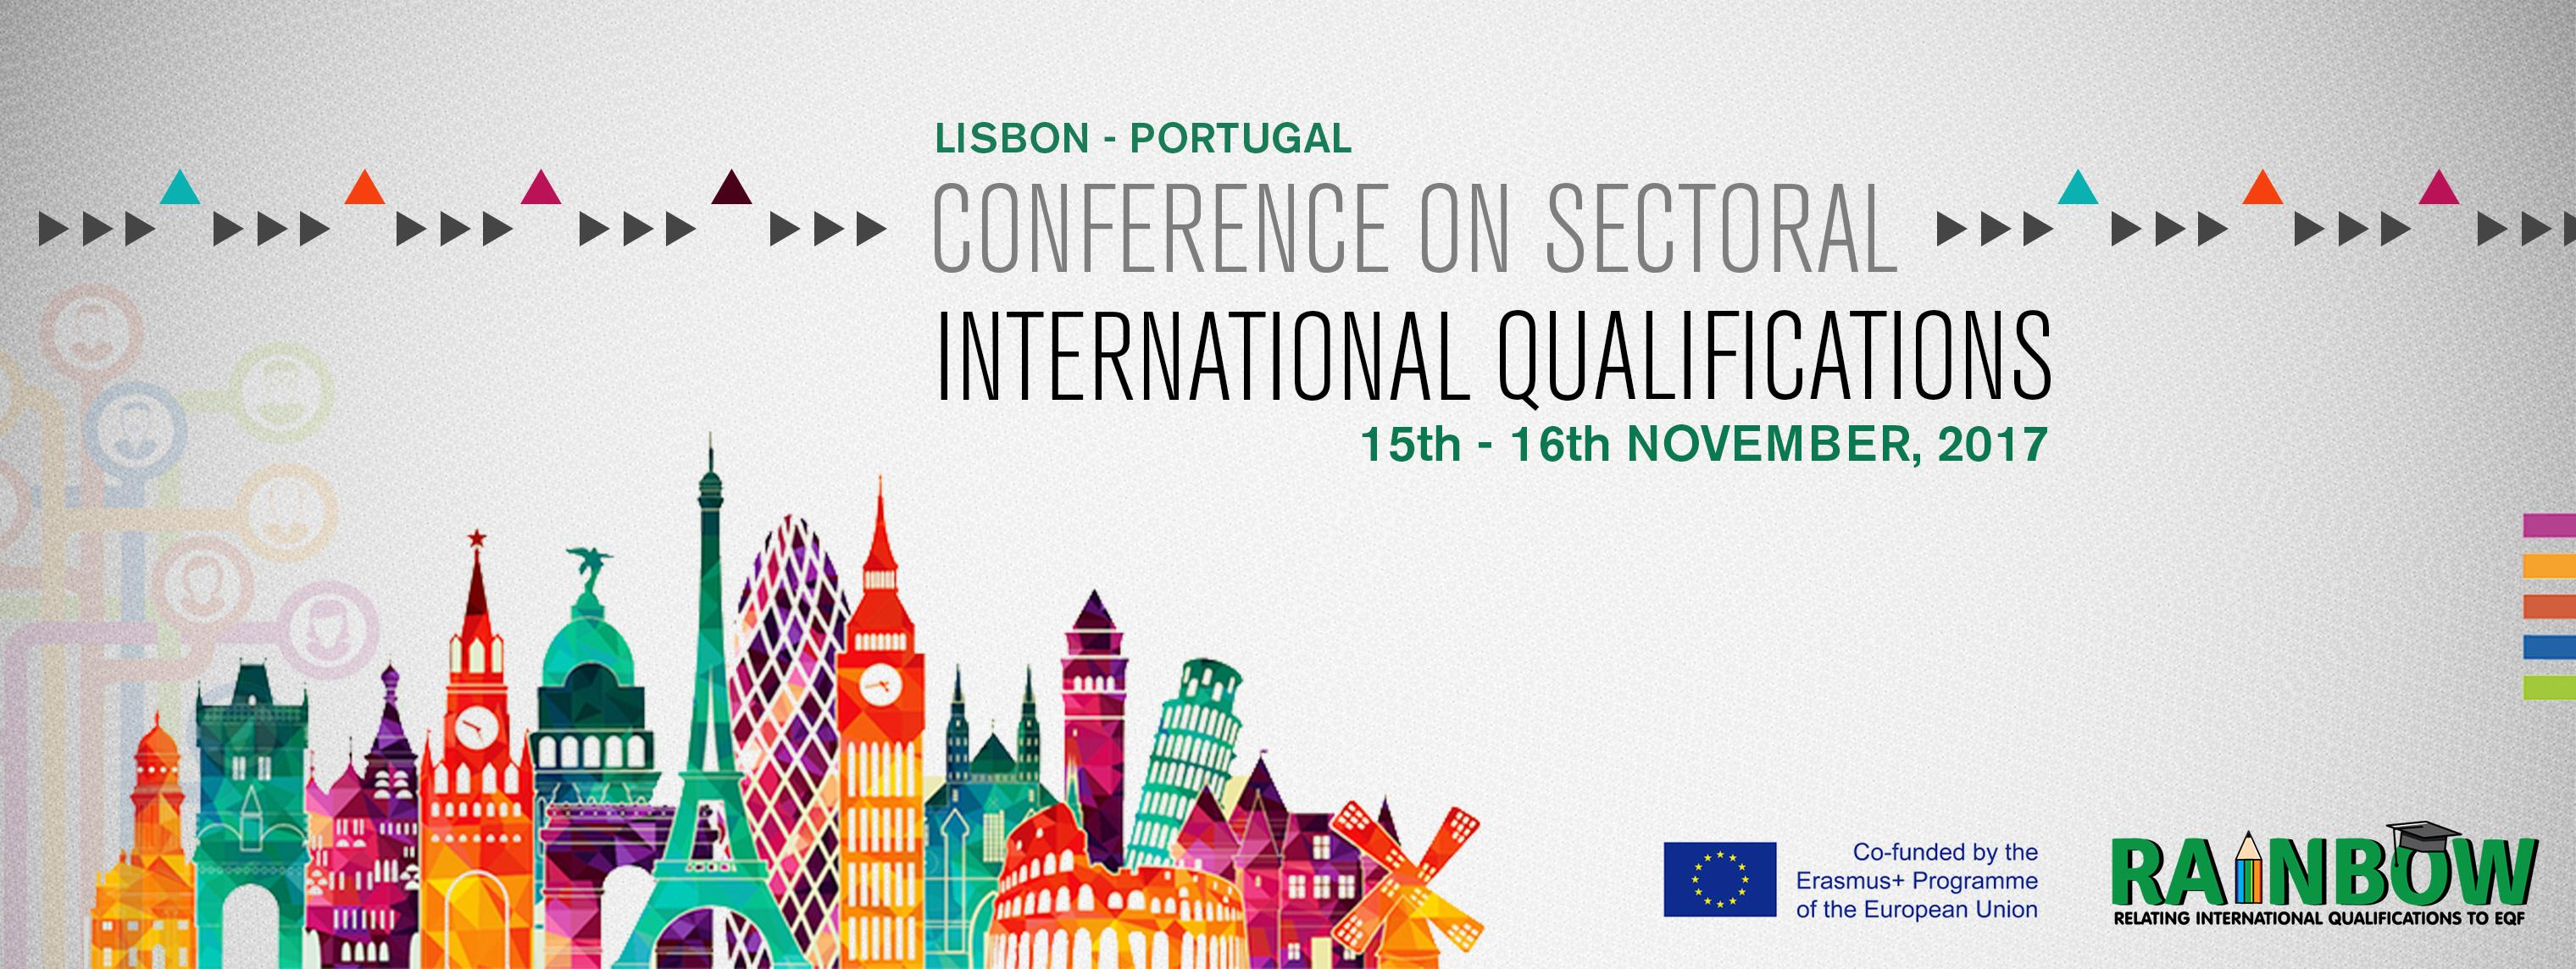 European Conference on Sectoral International Qualifications